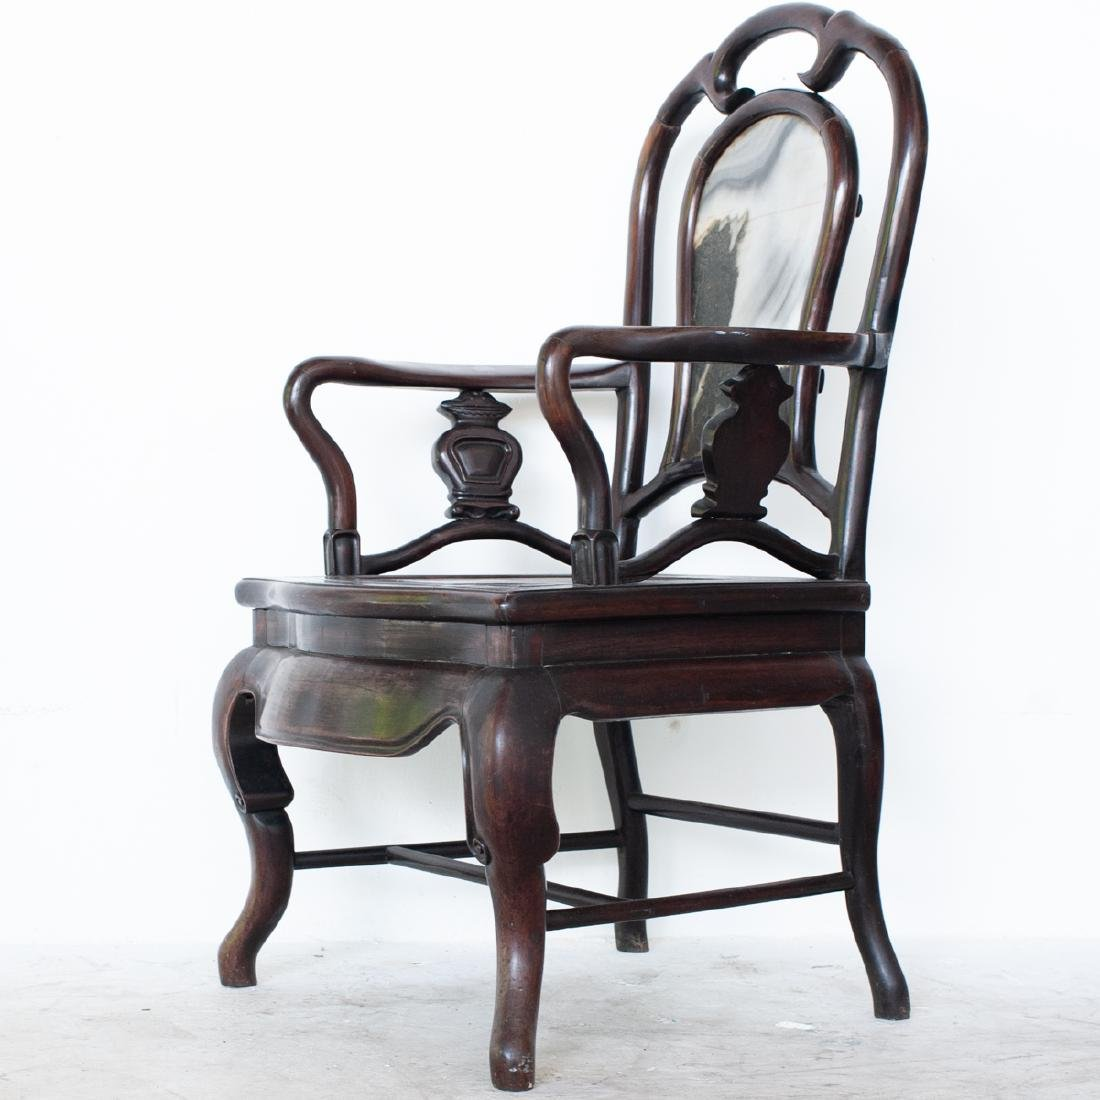 Carved Chinese Wooden Arm Chair - 2